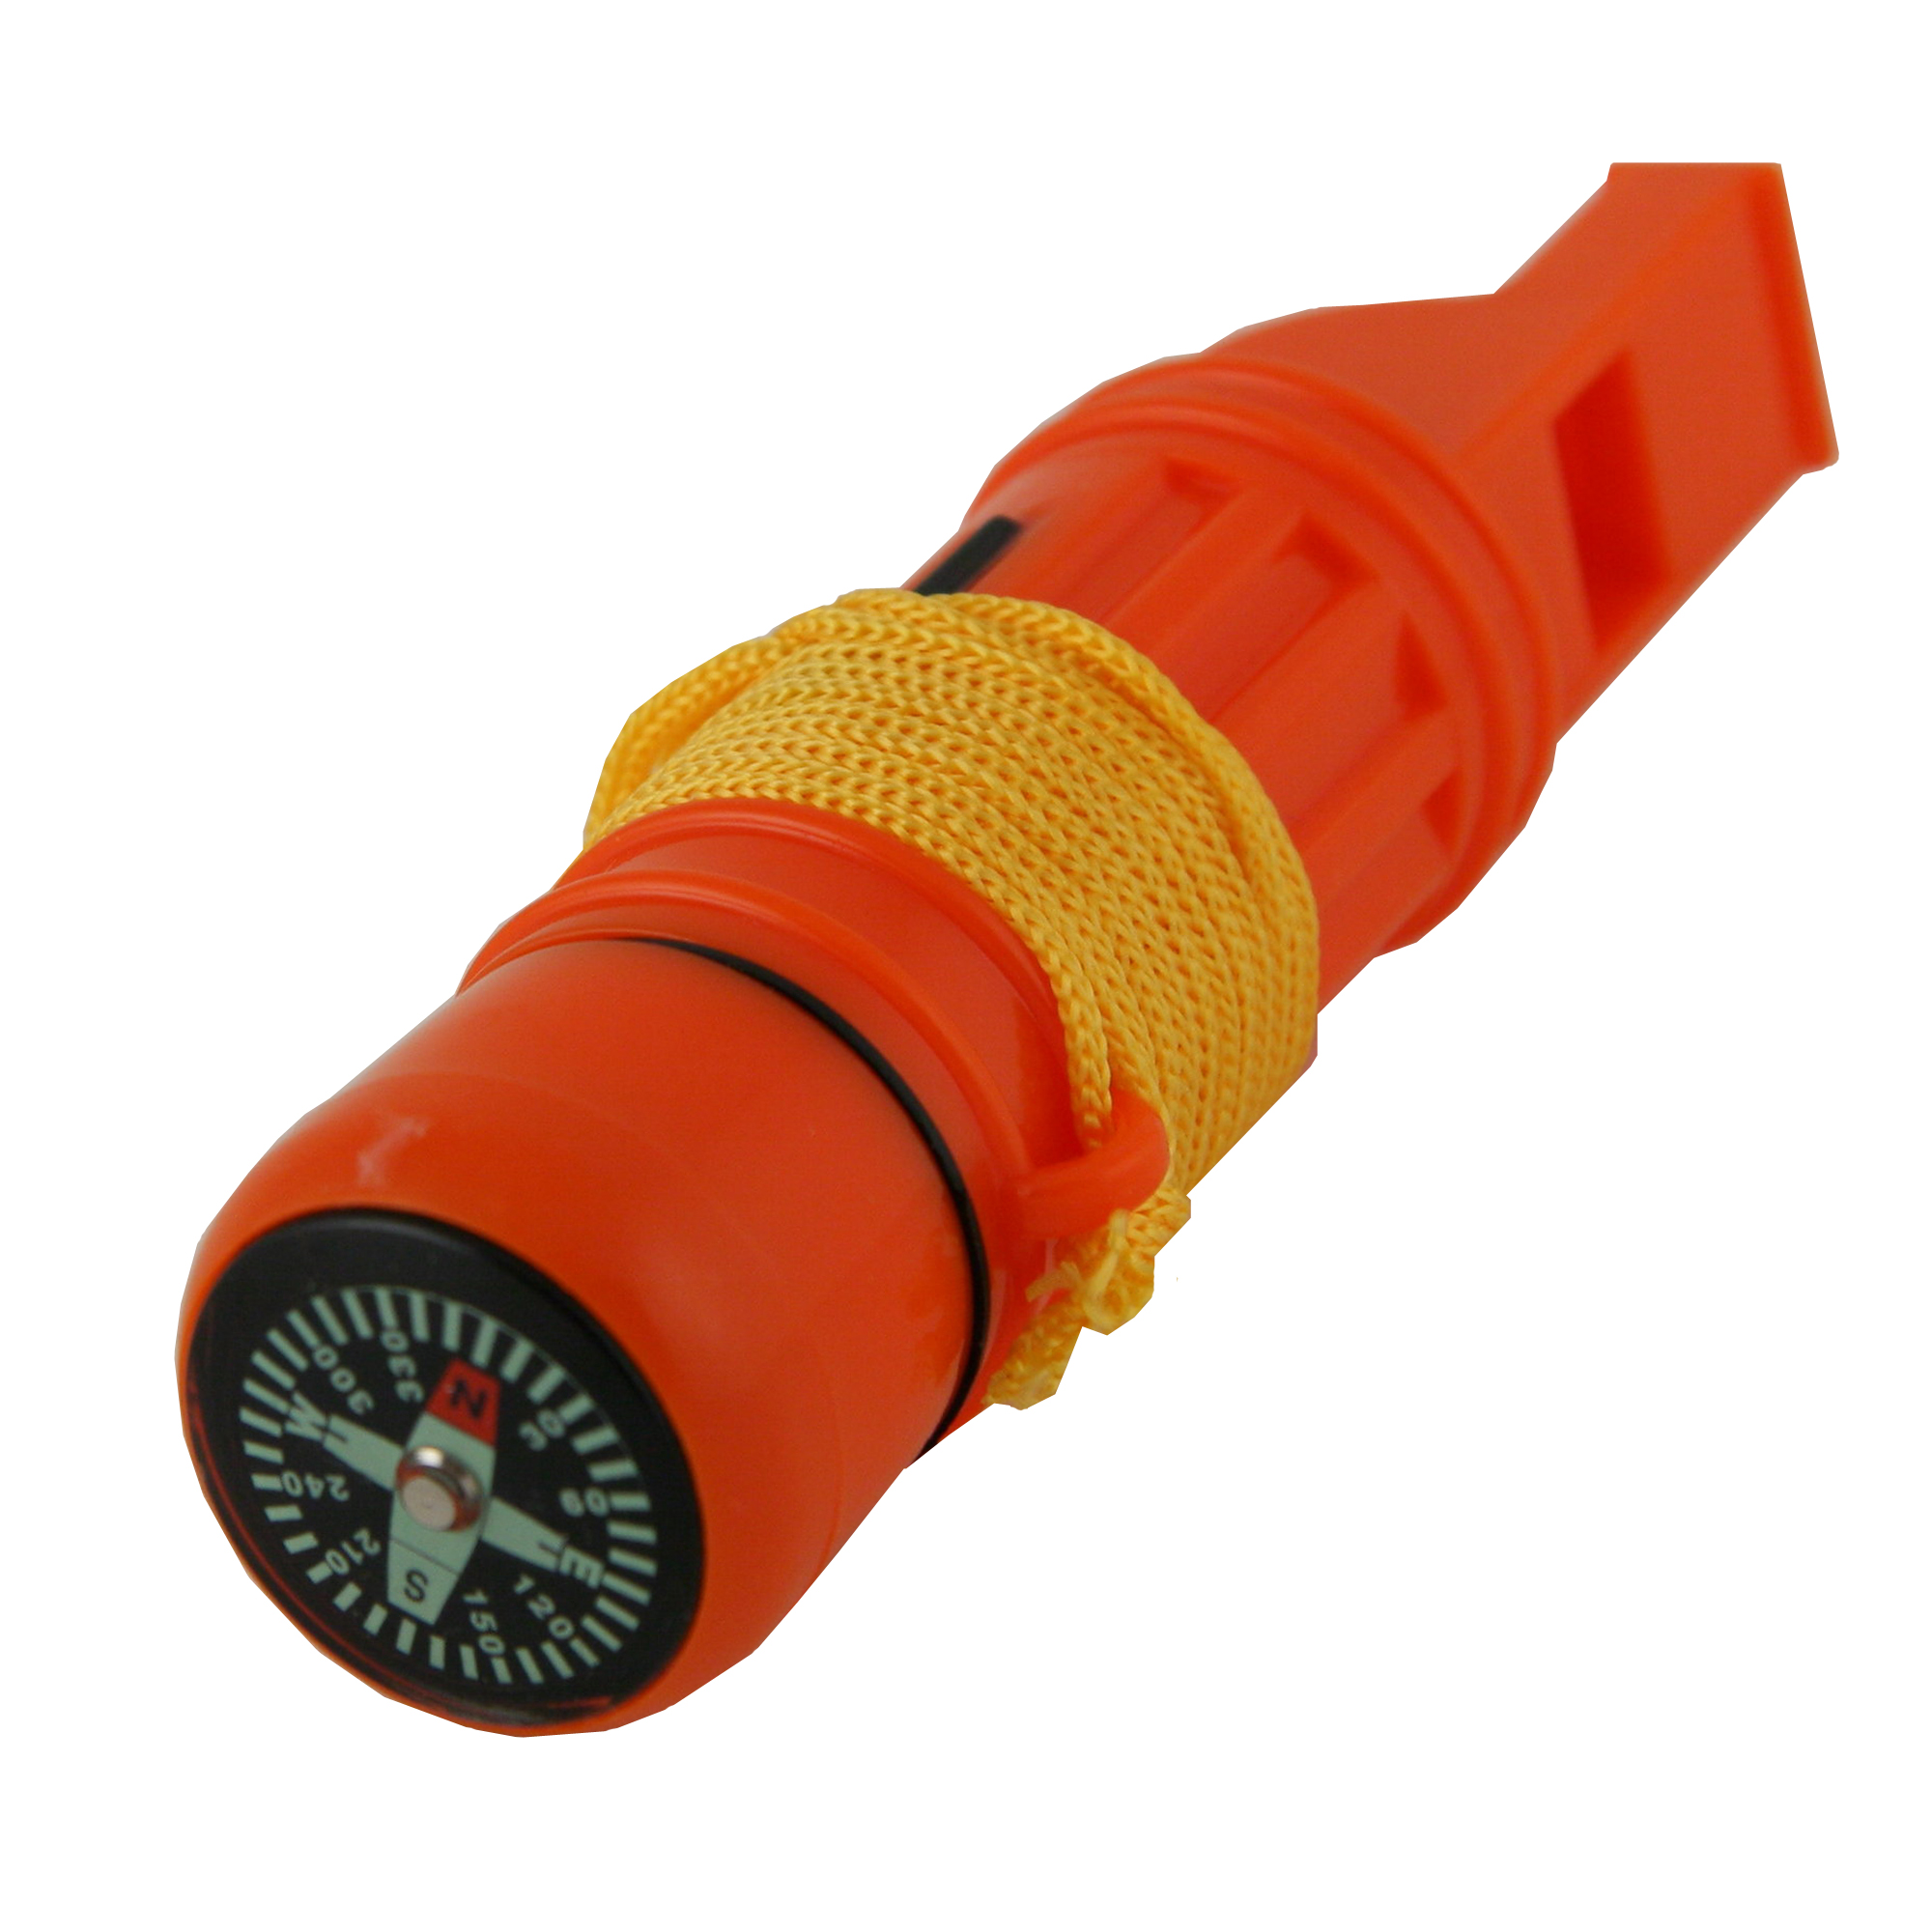 5 in 1 Emergency Survival Whistles, Available in 1, 3, and 30 Packs by Emergency Zone